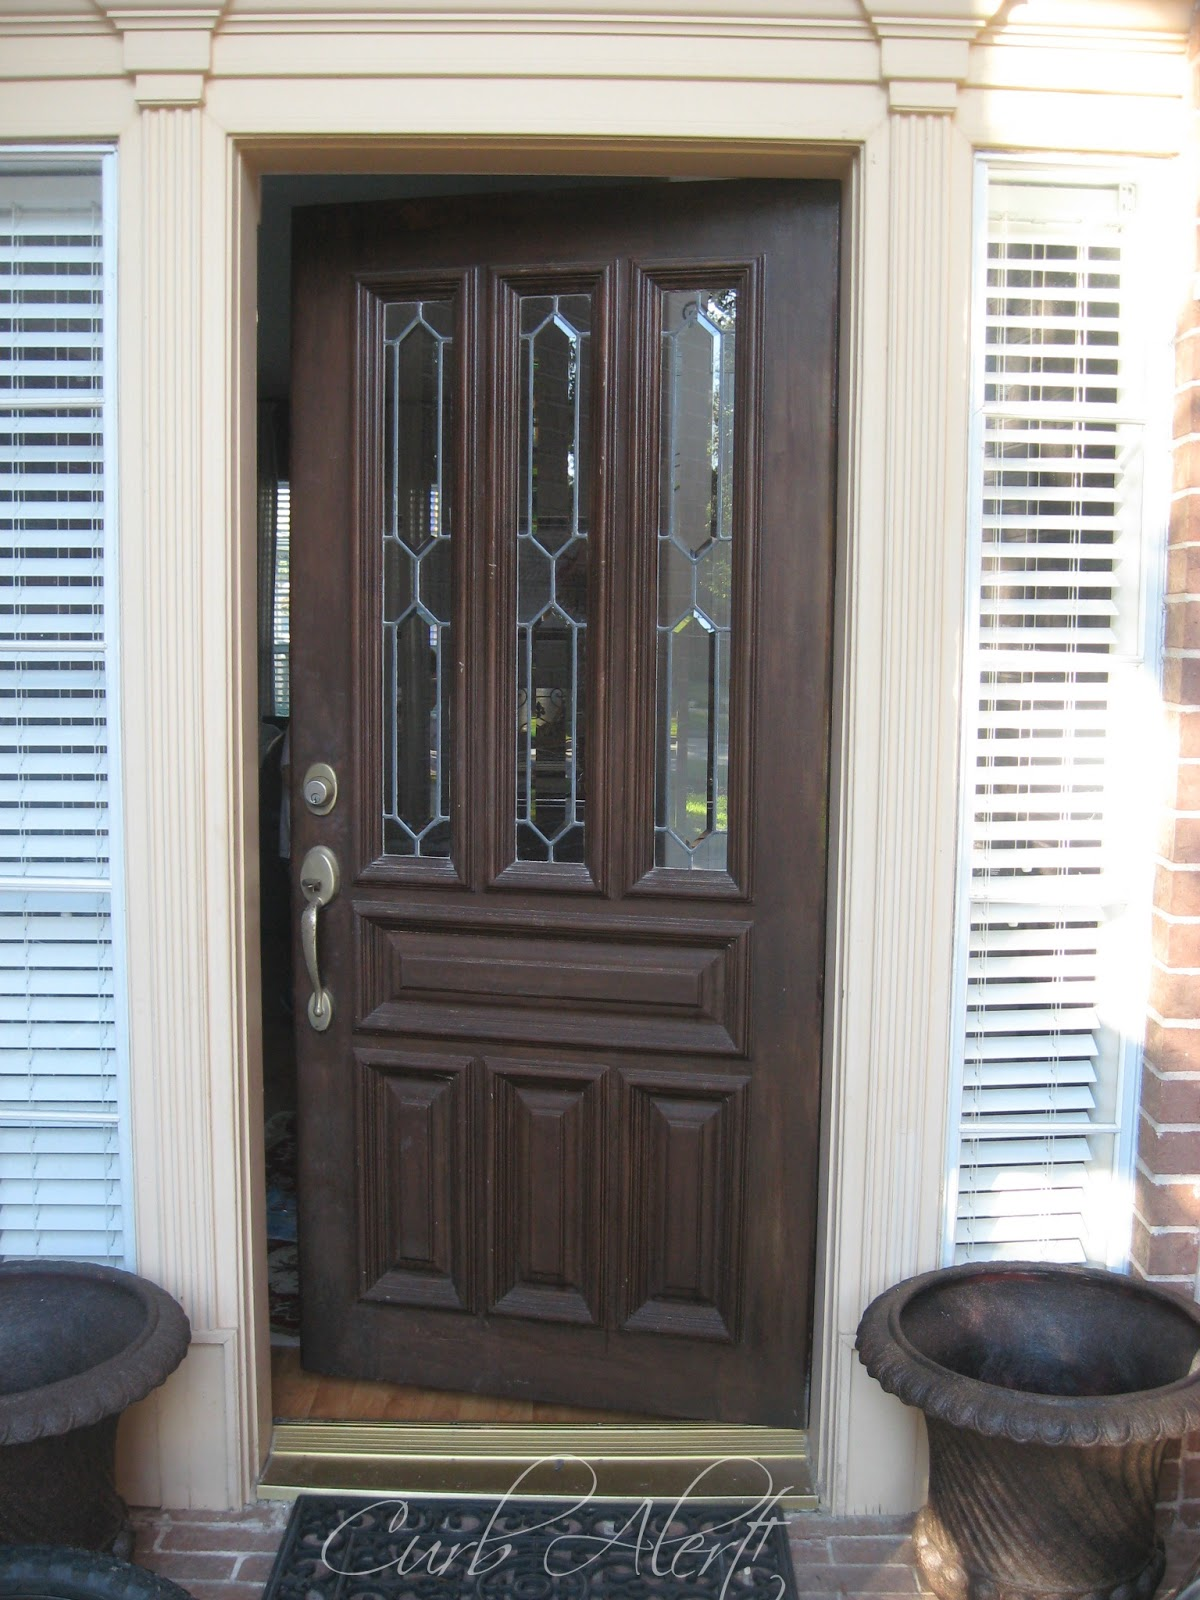 Curb Alert Updating Your Home S Curb Appeal Front Door